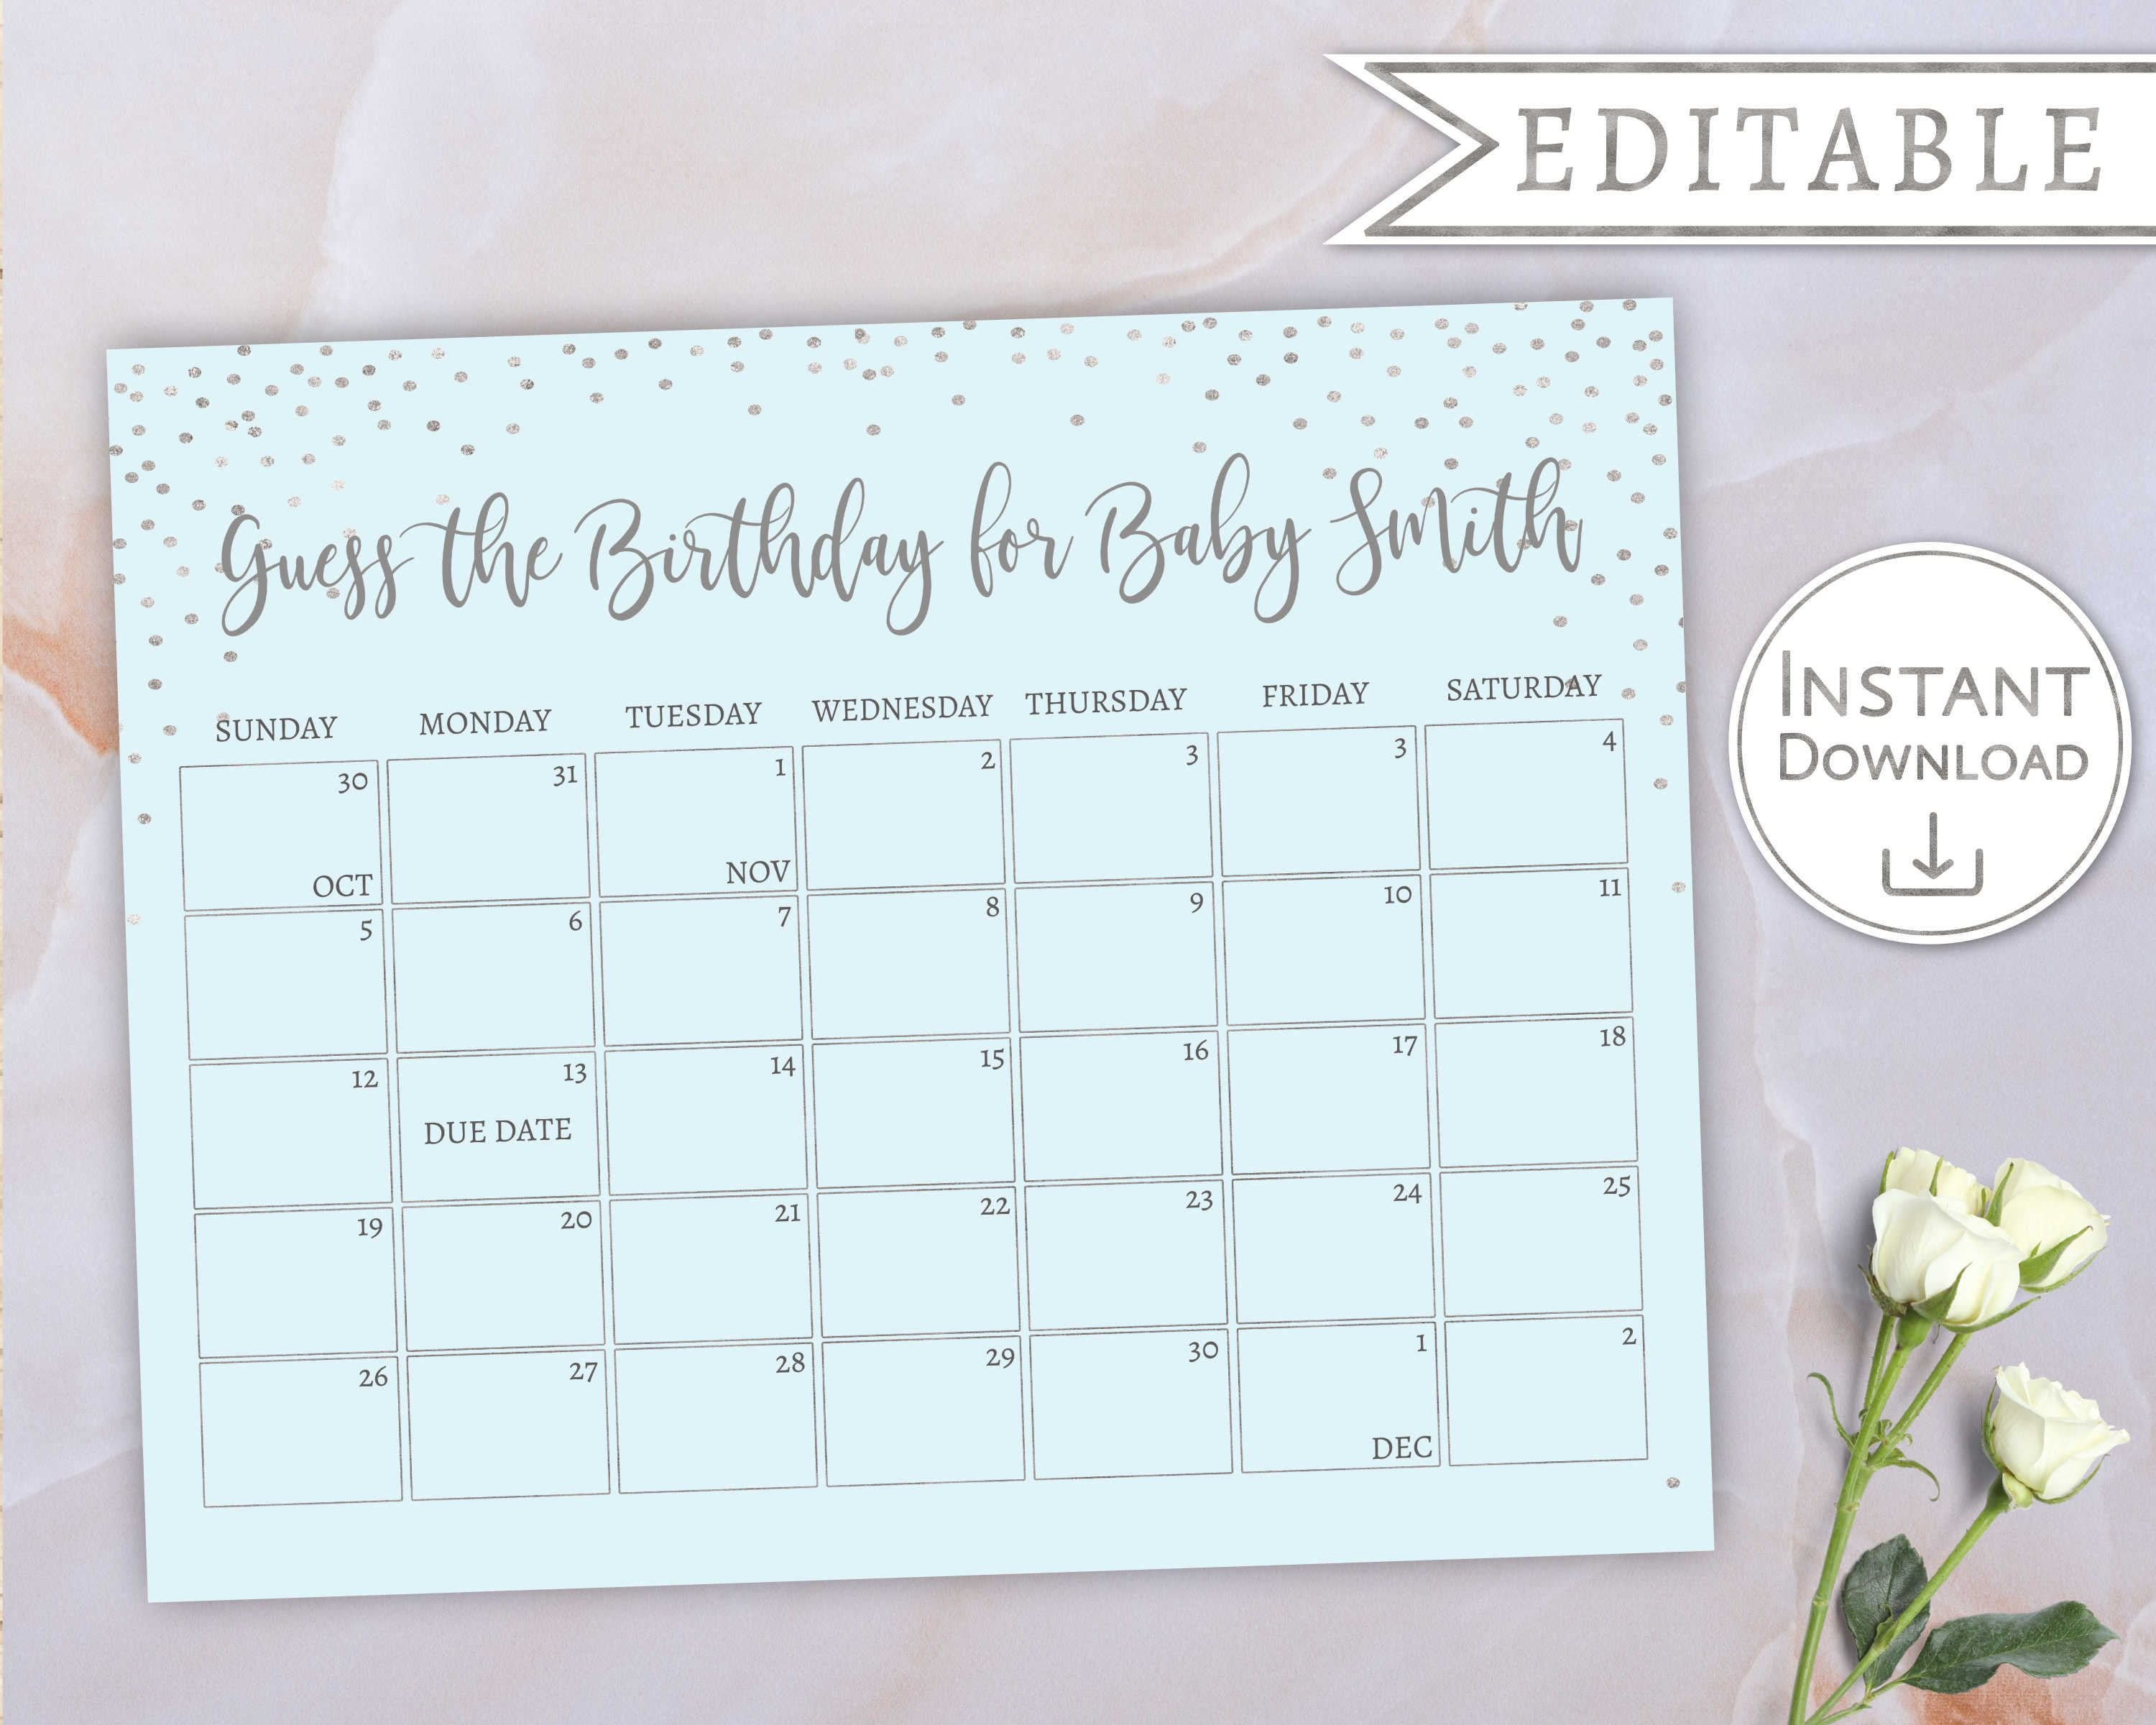 Baby Due Date Calendar, Guess Babys Birthday, Baby Boy Blue Guess The Due Date Calendar Template Free